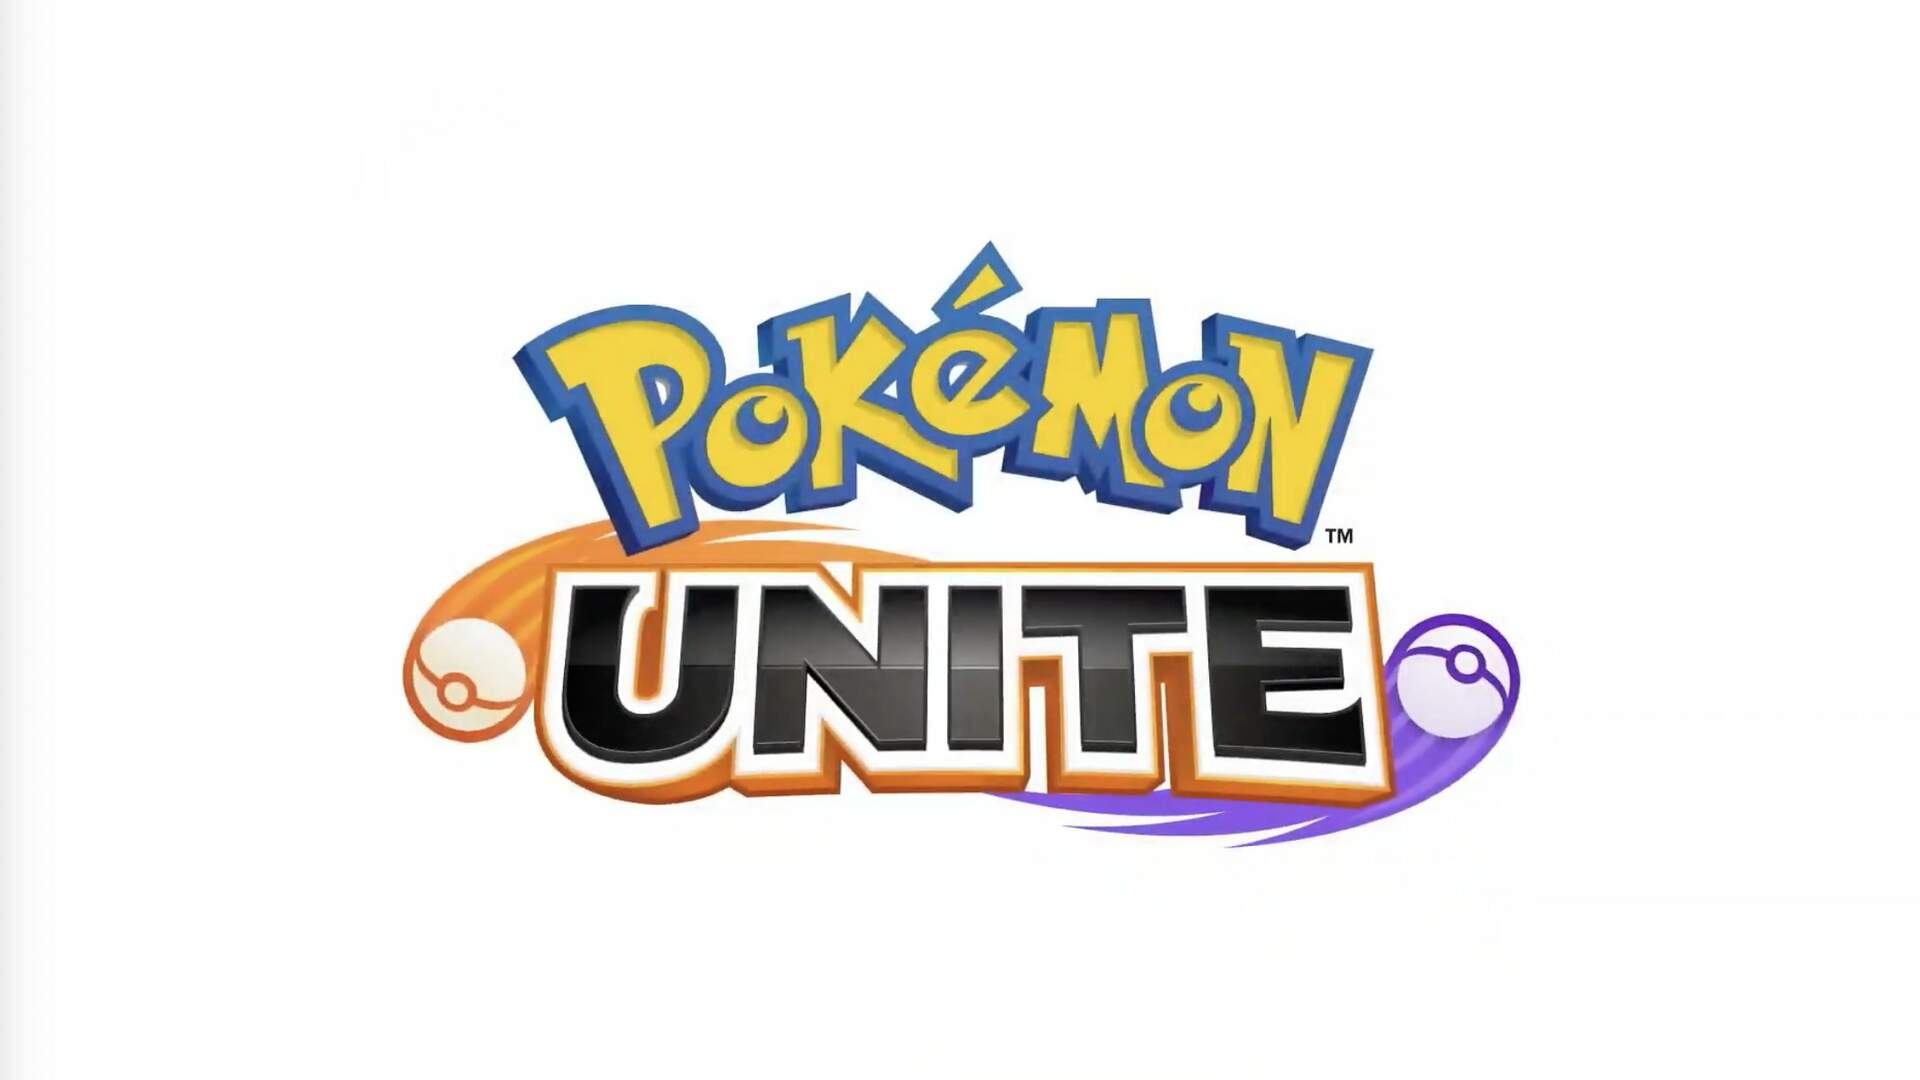 Pokemon Unite Is a Free-to-Play MOBA on Mobile and Switch